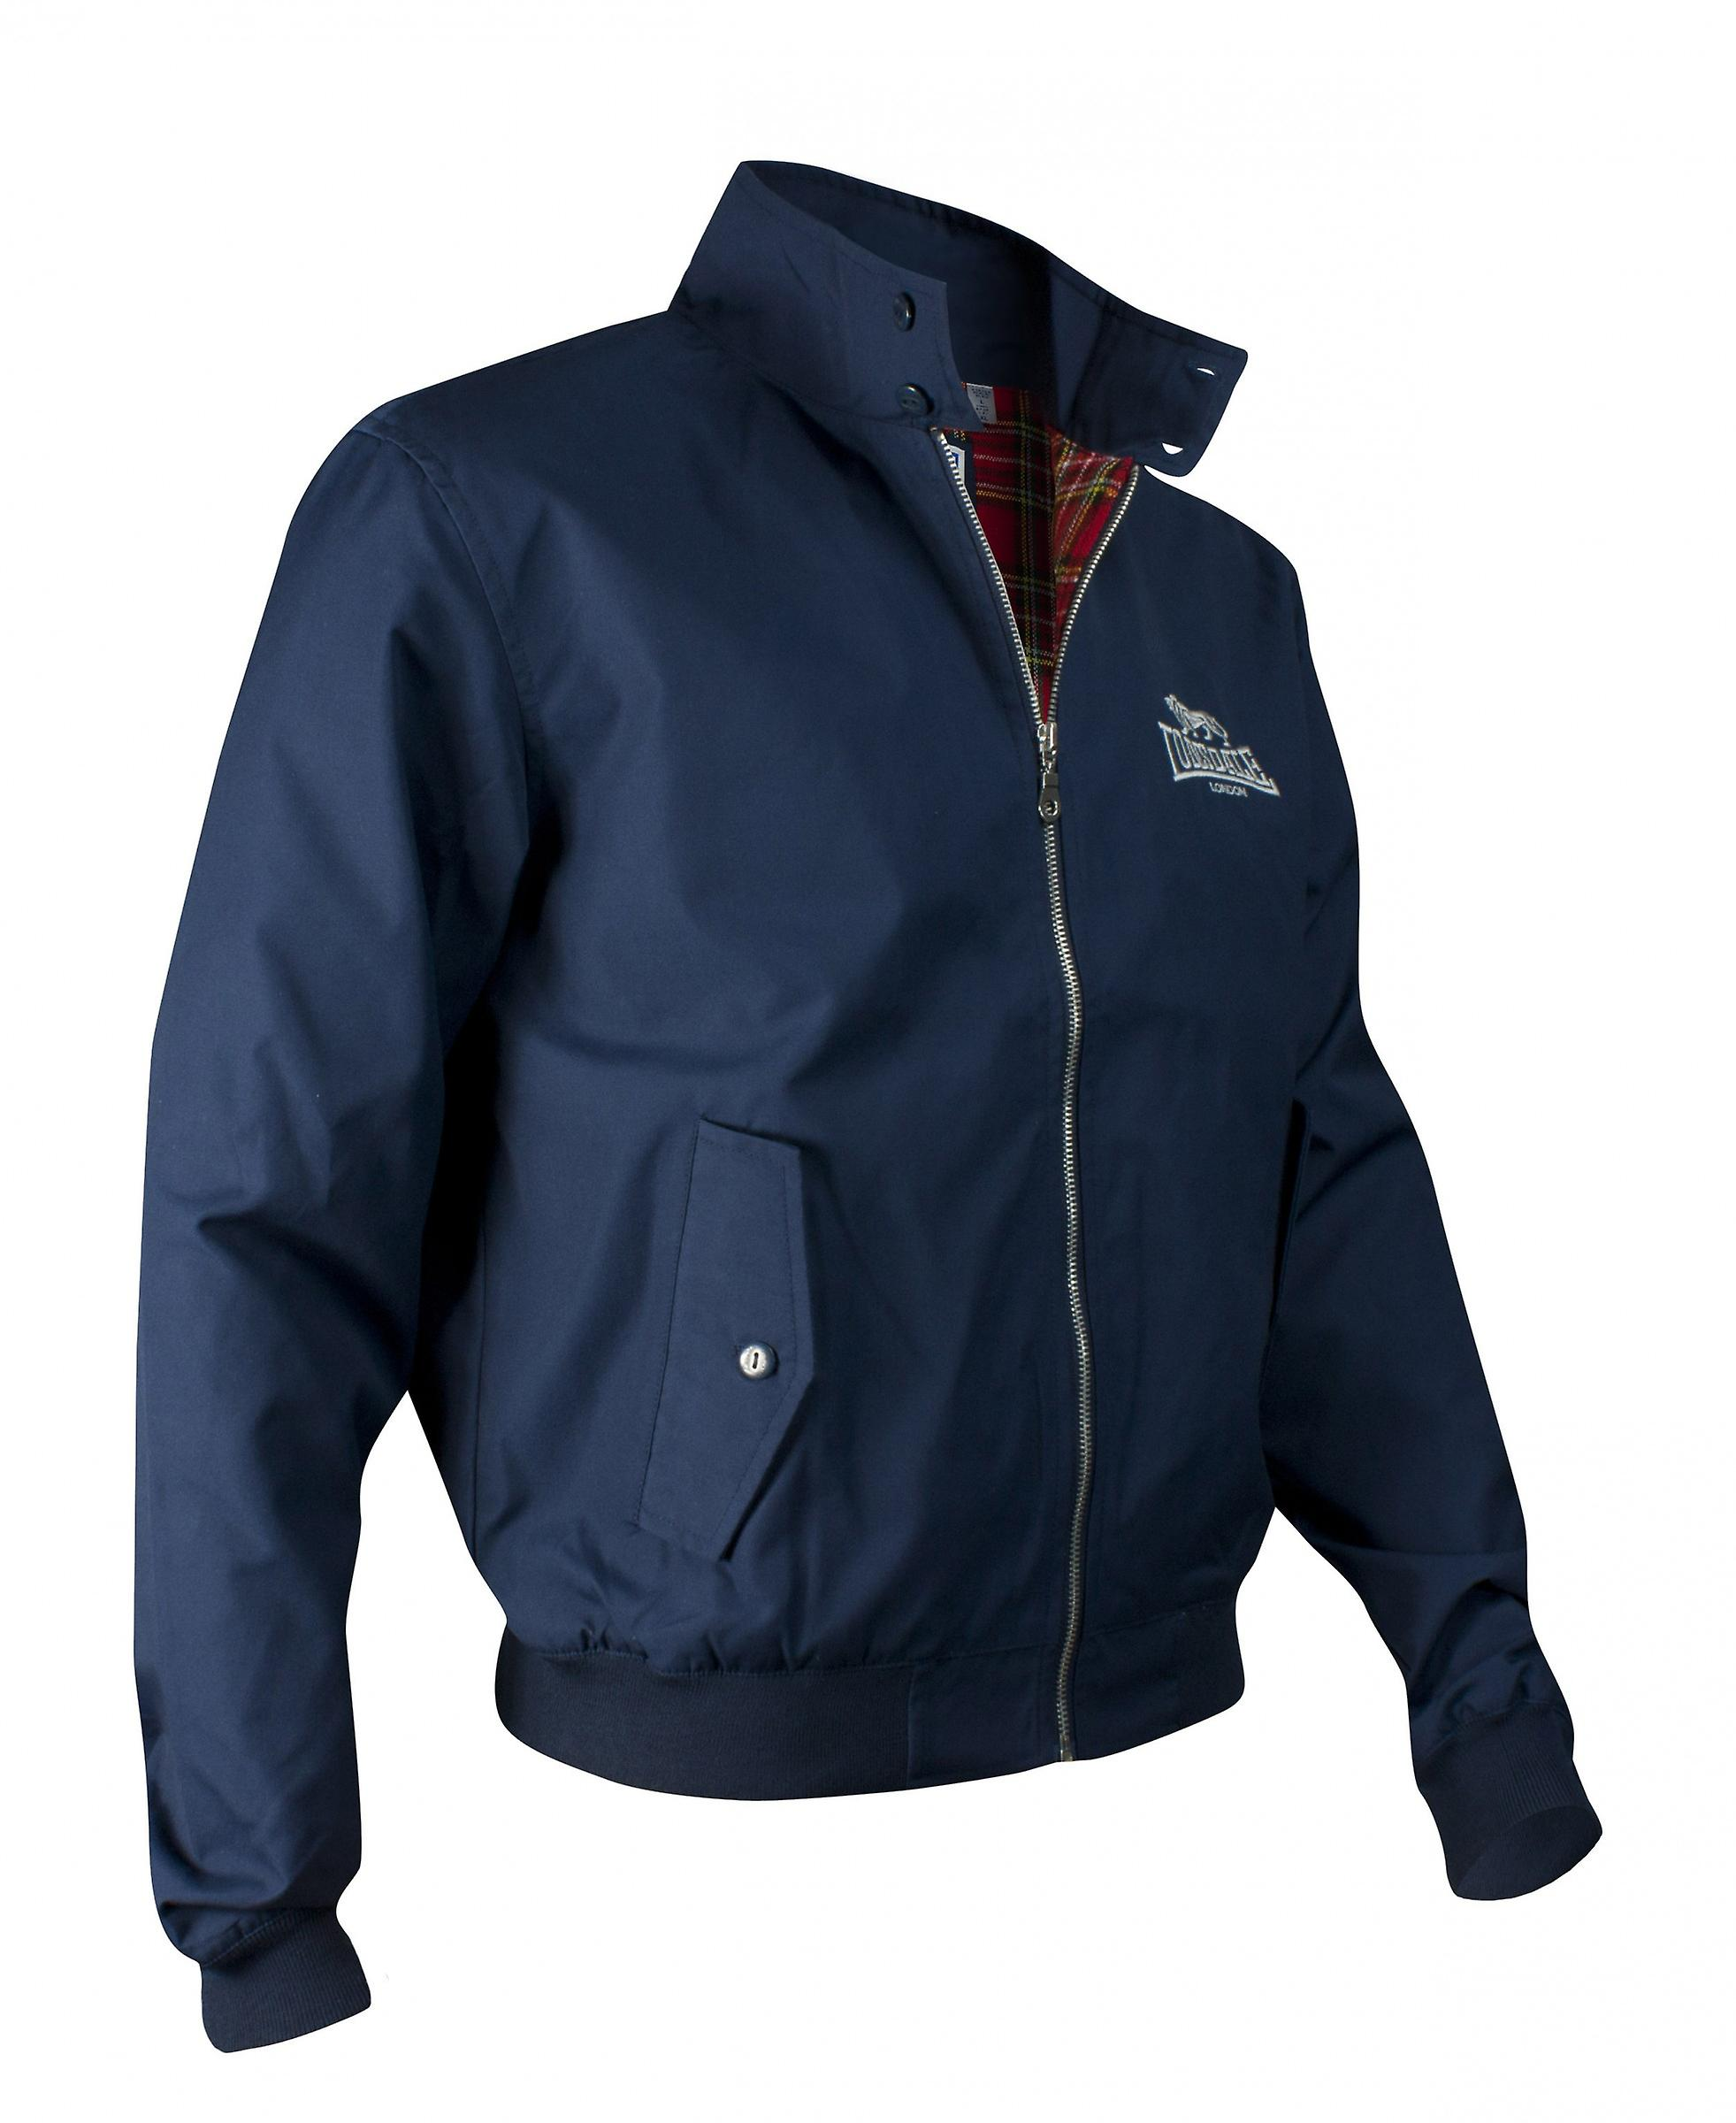 Lonsdale mens jacket of classic